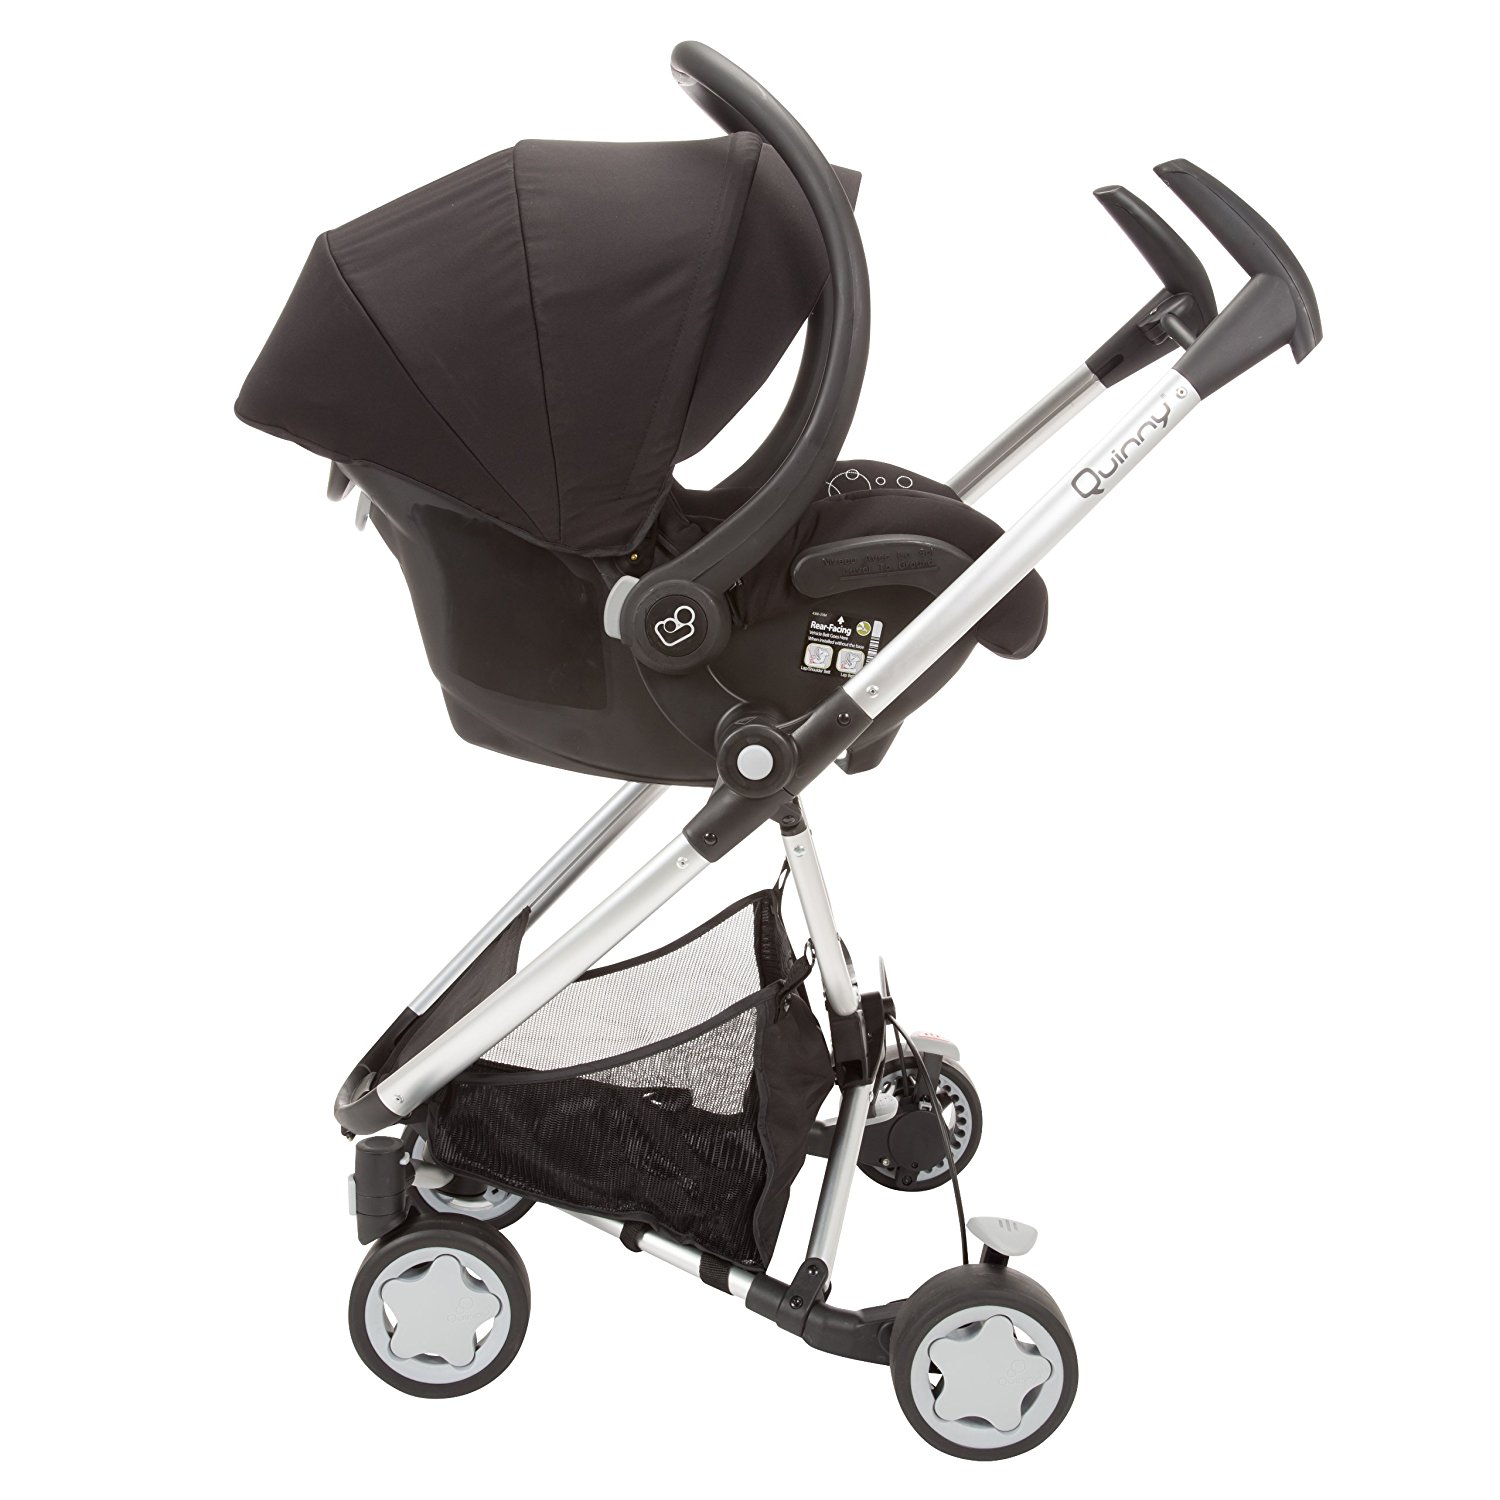 Car Seat Adapter For Stroller Quinny Zapp Xtra Review